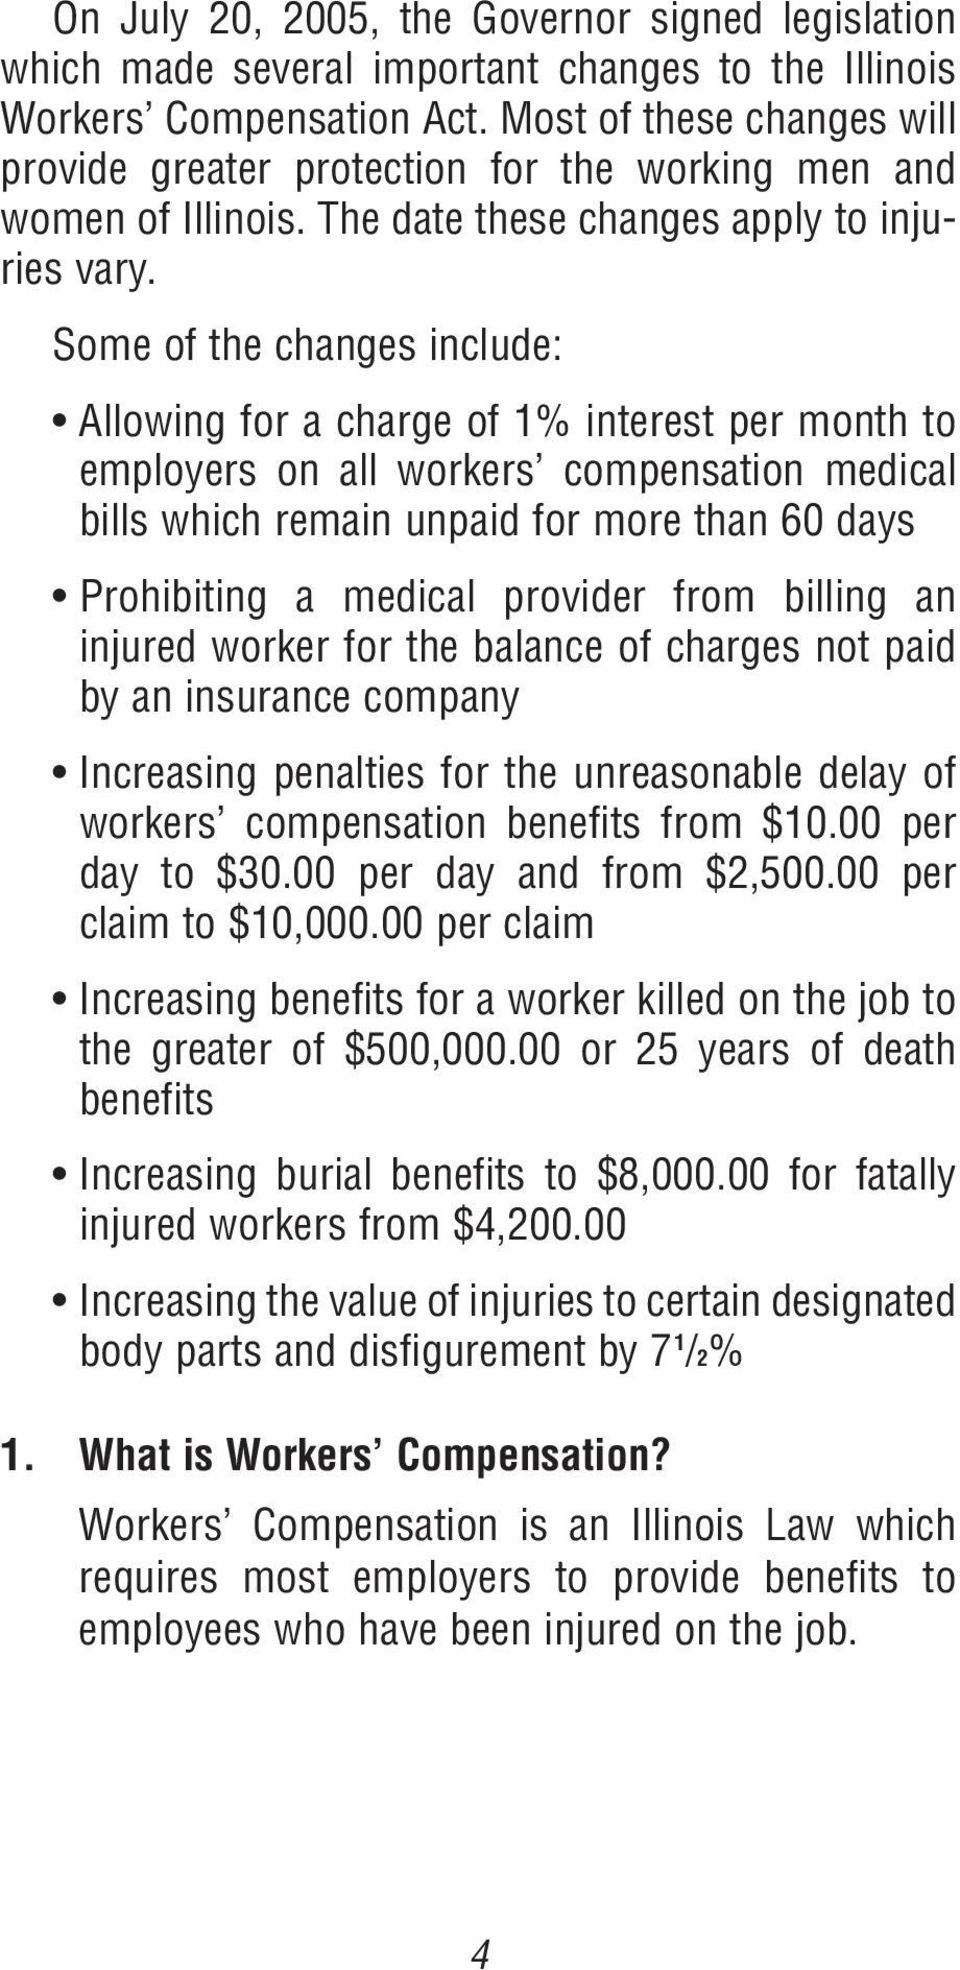 Some of the changes include: Allowing for a charge of 1% interest per month to employers on all workers compensation medical bills which remain unpaid for more than 60 days Prohibiting a medical